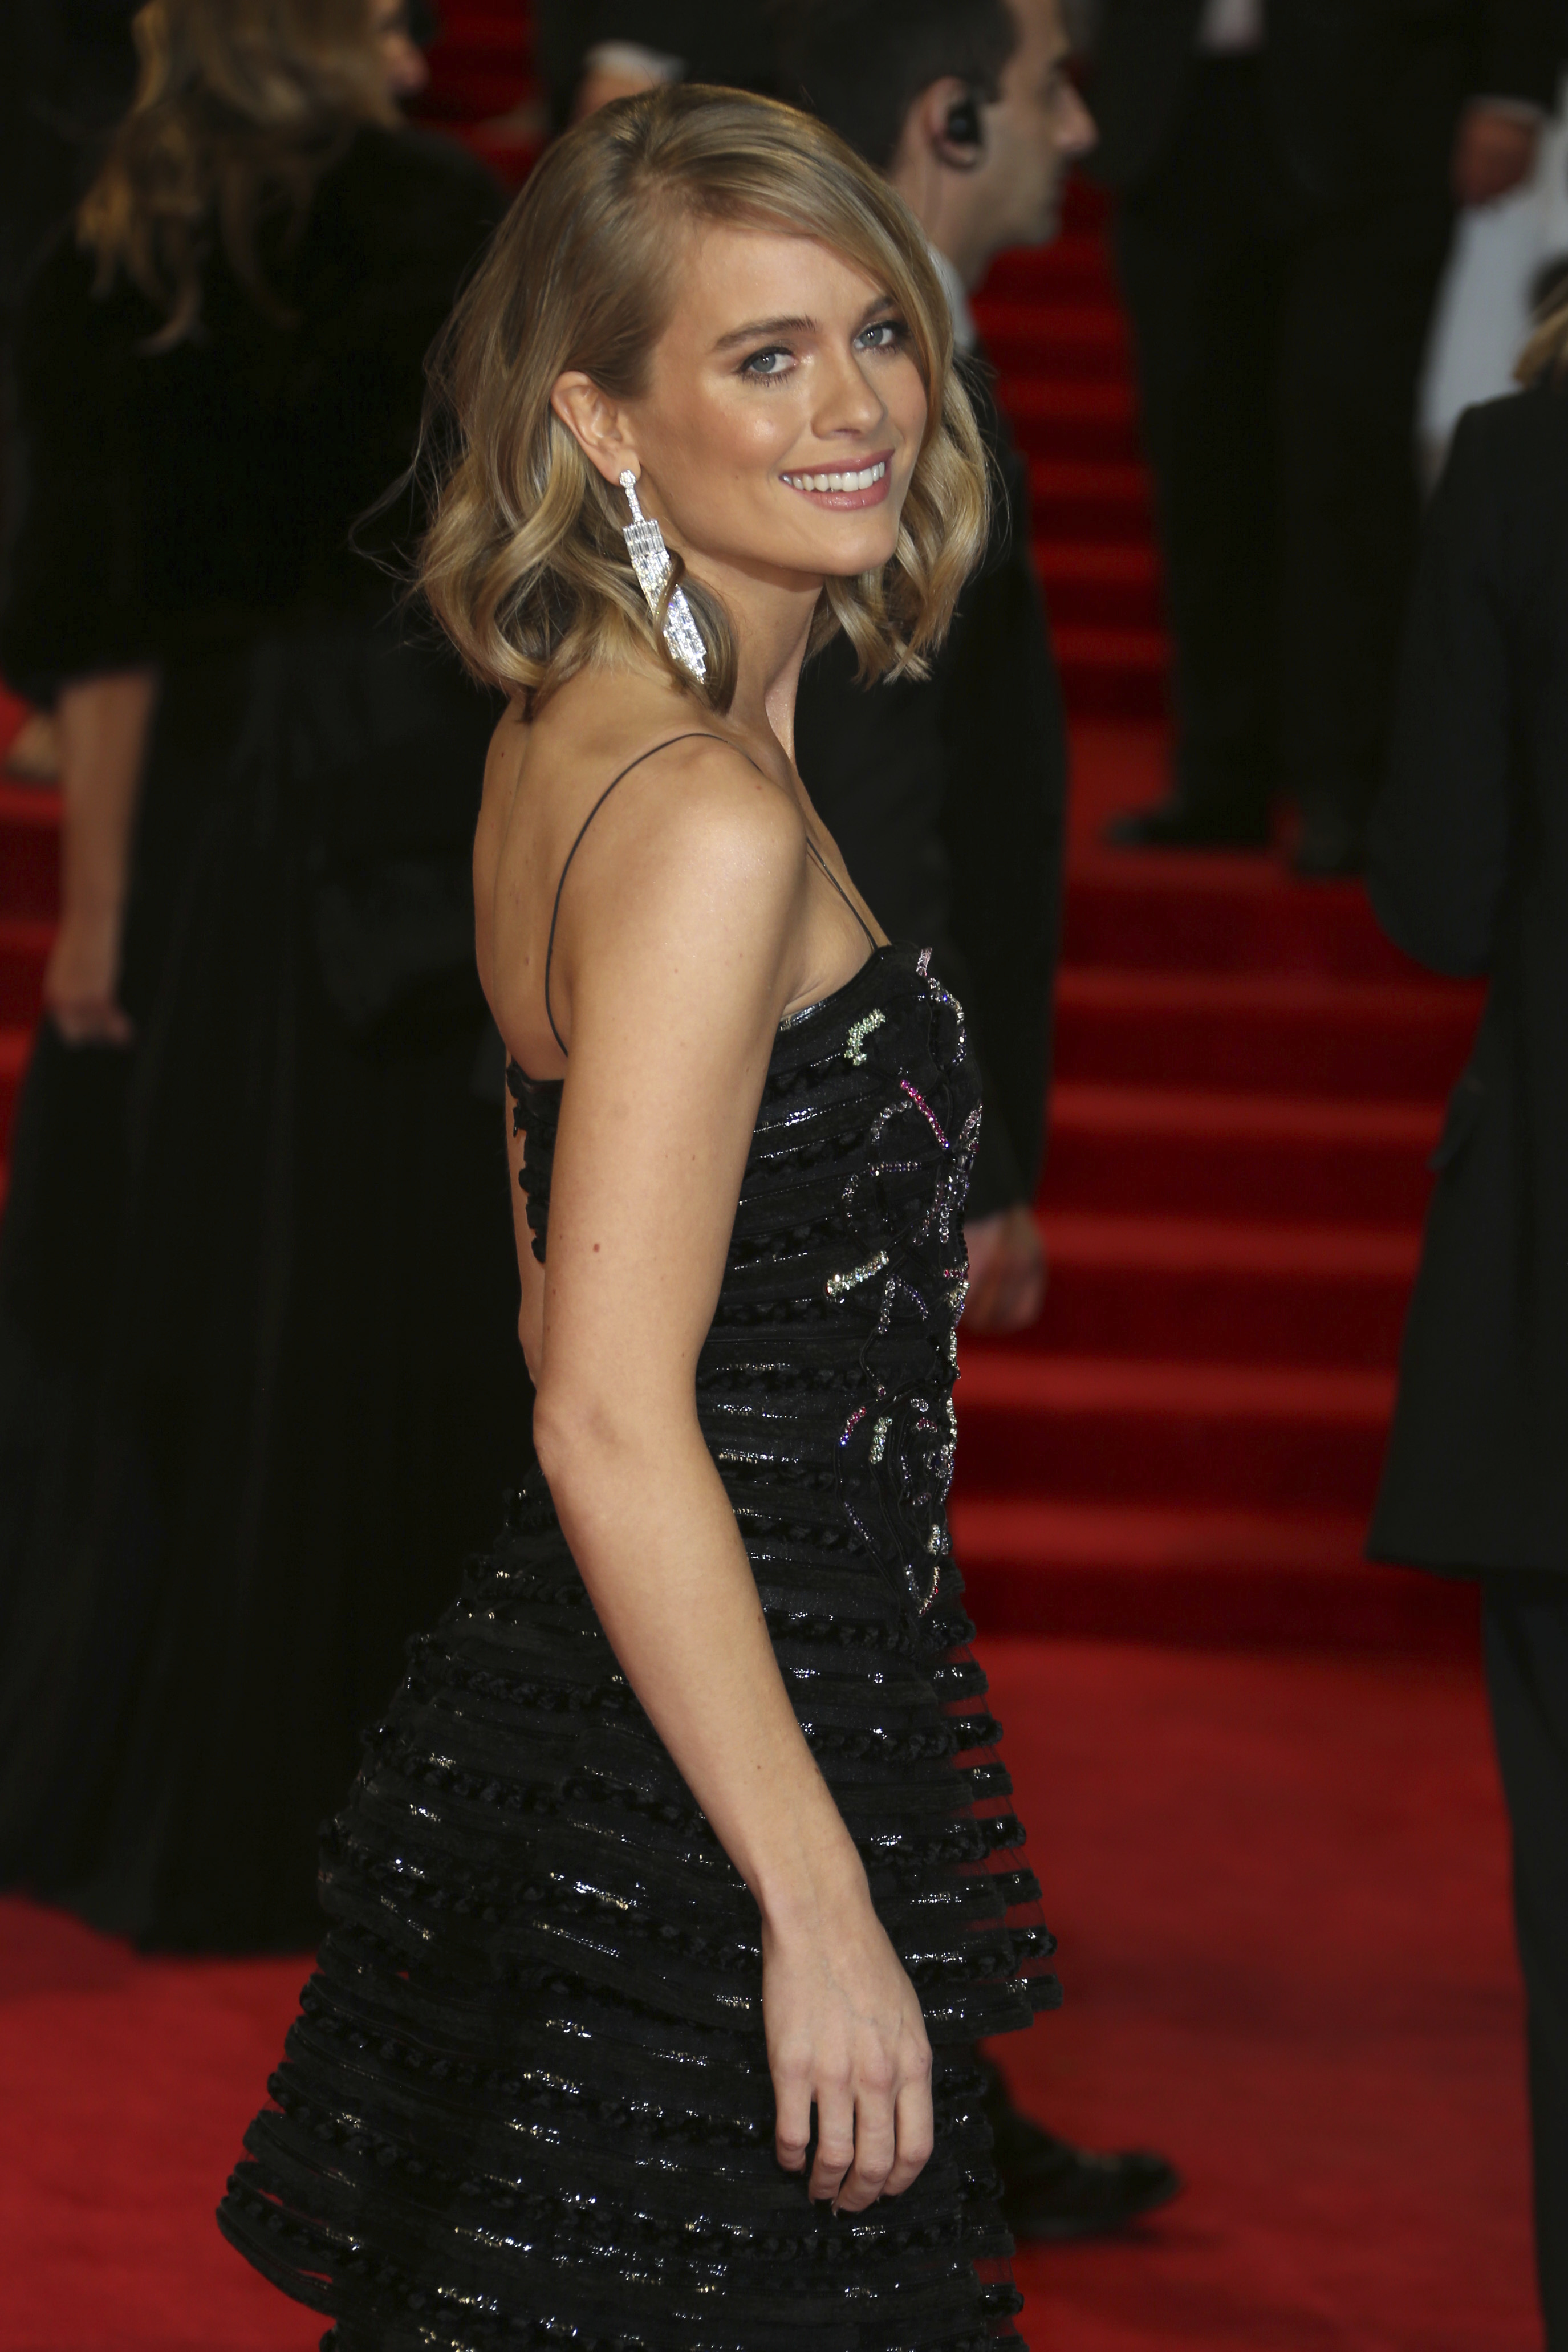 <div class='meta'><div class='origin-logo' data-origin='AP'></div><span class='caption-text' data-credit='Joel C Ryan/Invision/AP'>Actress Cressida Bonas poses for photographers upon arrival at the BAFTA 2018 Awards in London, Sunday, Feb. 18, 2018.</span></div>